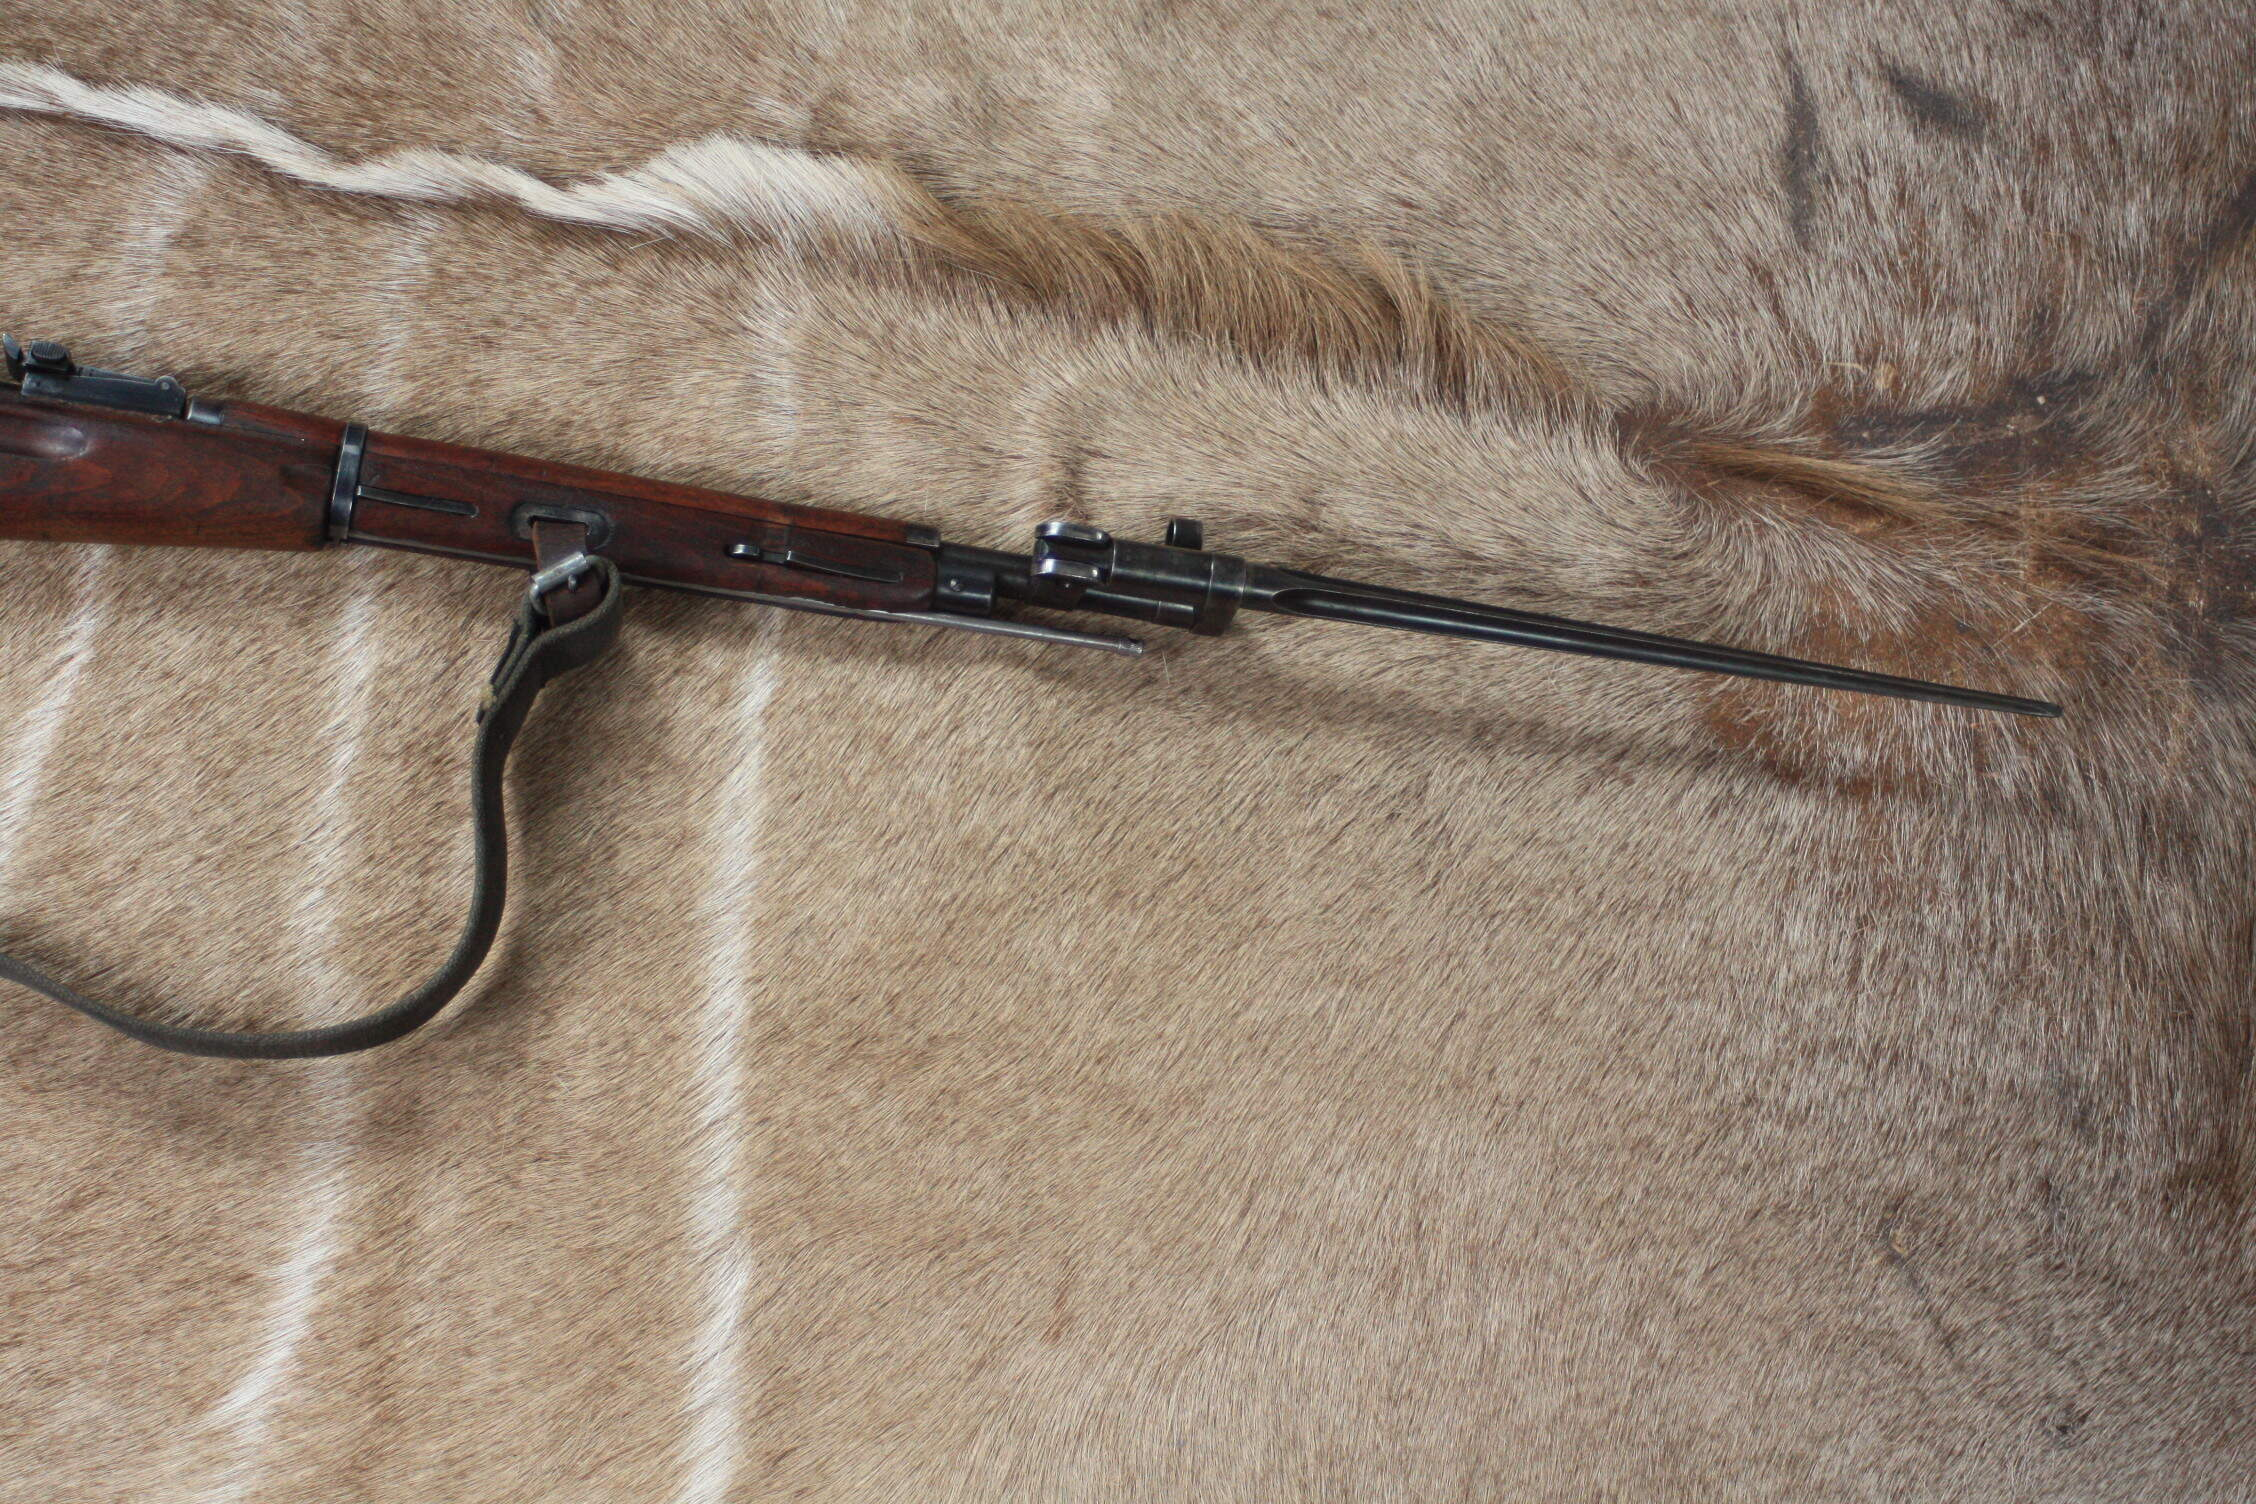 Mosin Nagant M44 7.62 x 54R Bolt Action Rifle